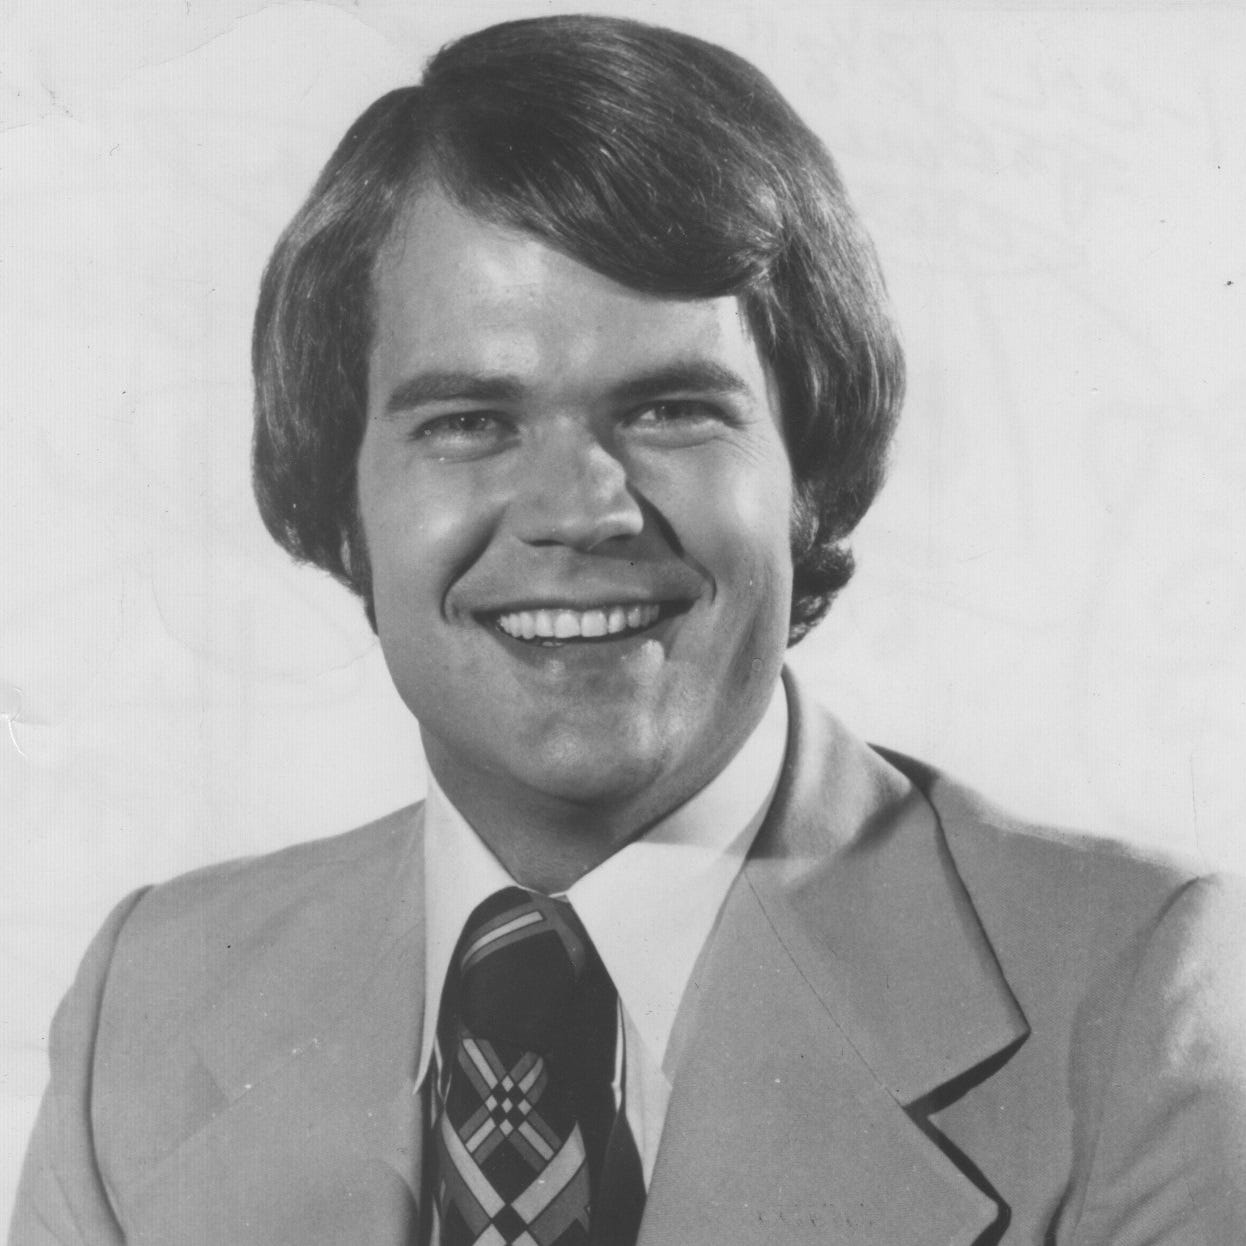 Sportscaster Chet Coppock, who got his flamboyant start in Indy, dies after car crash